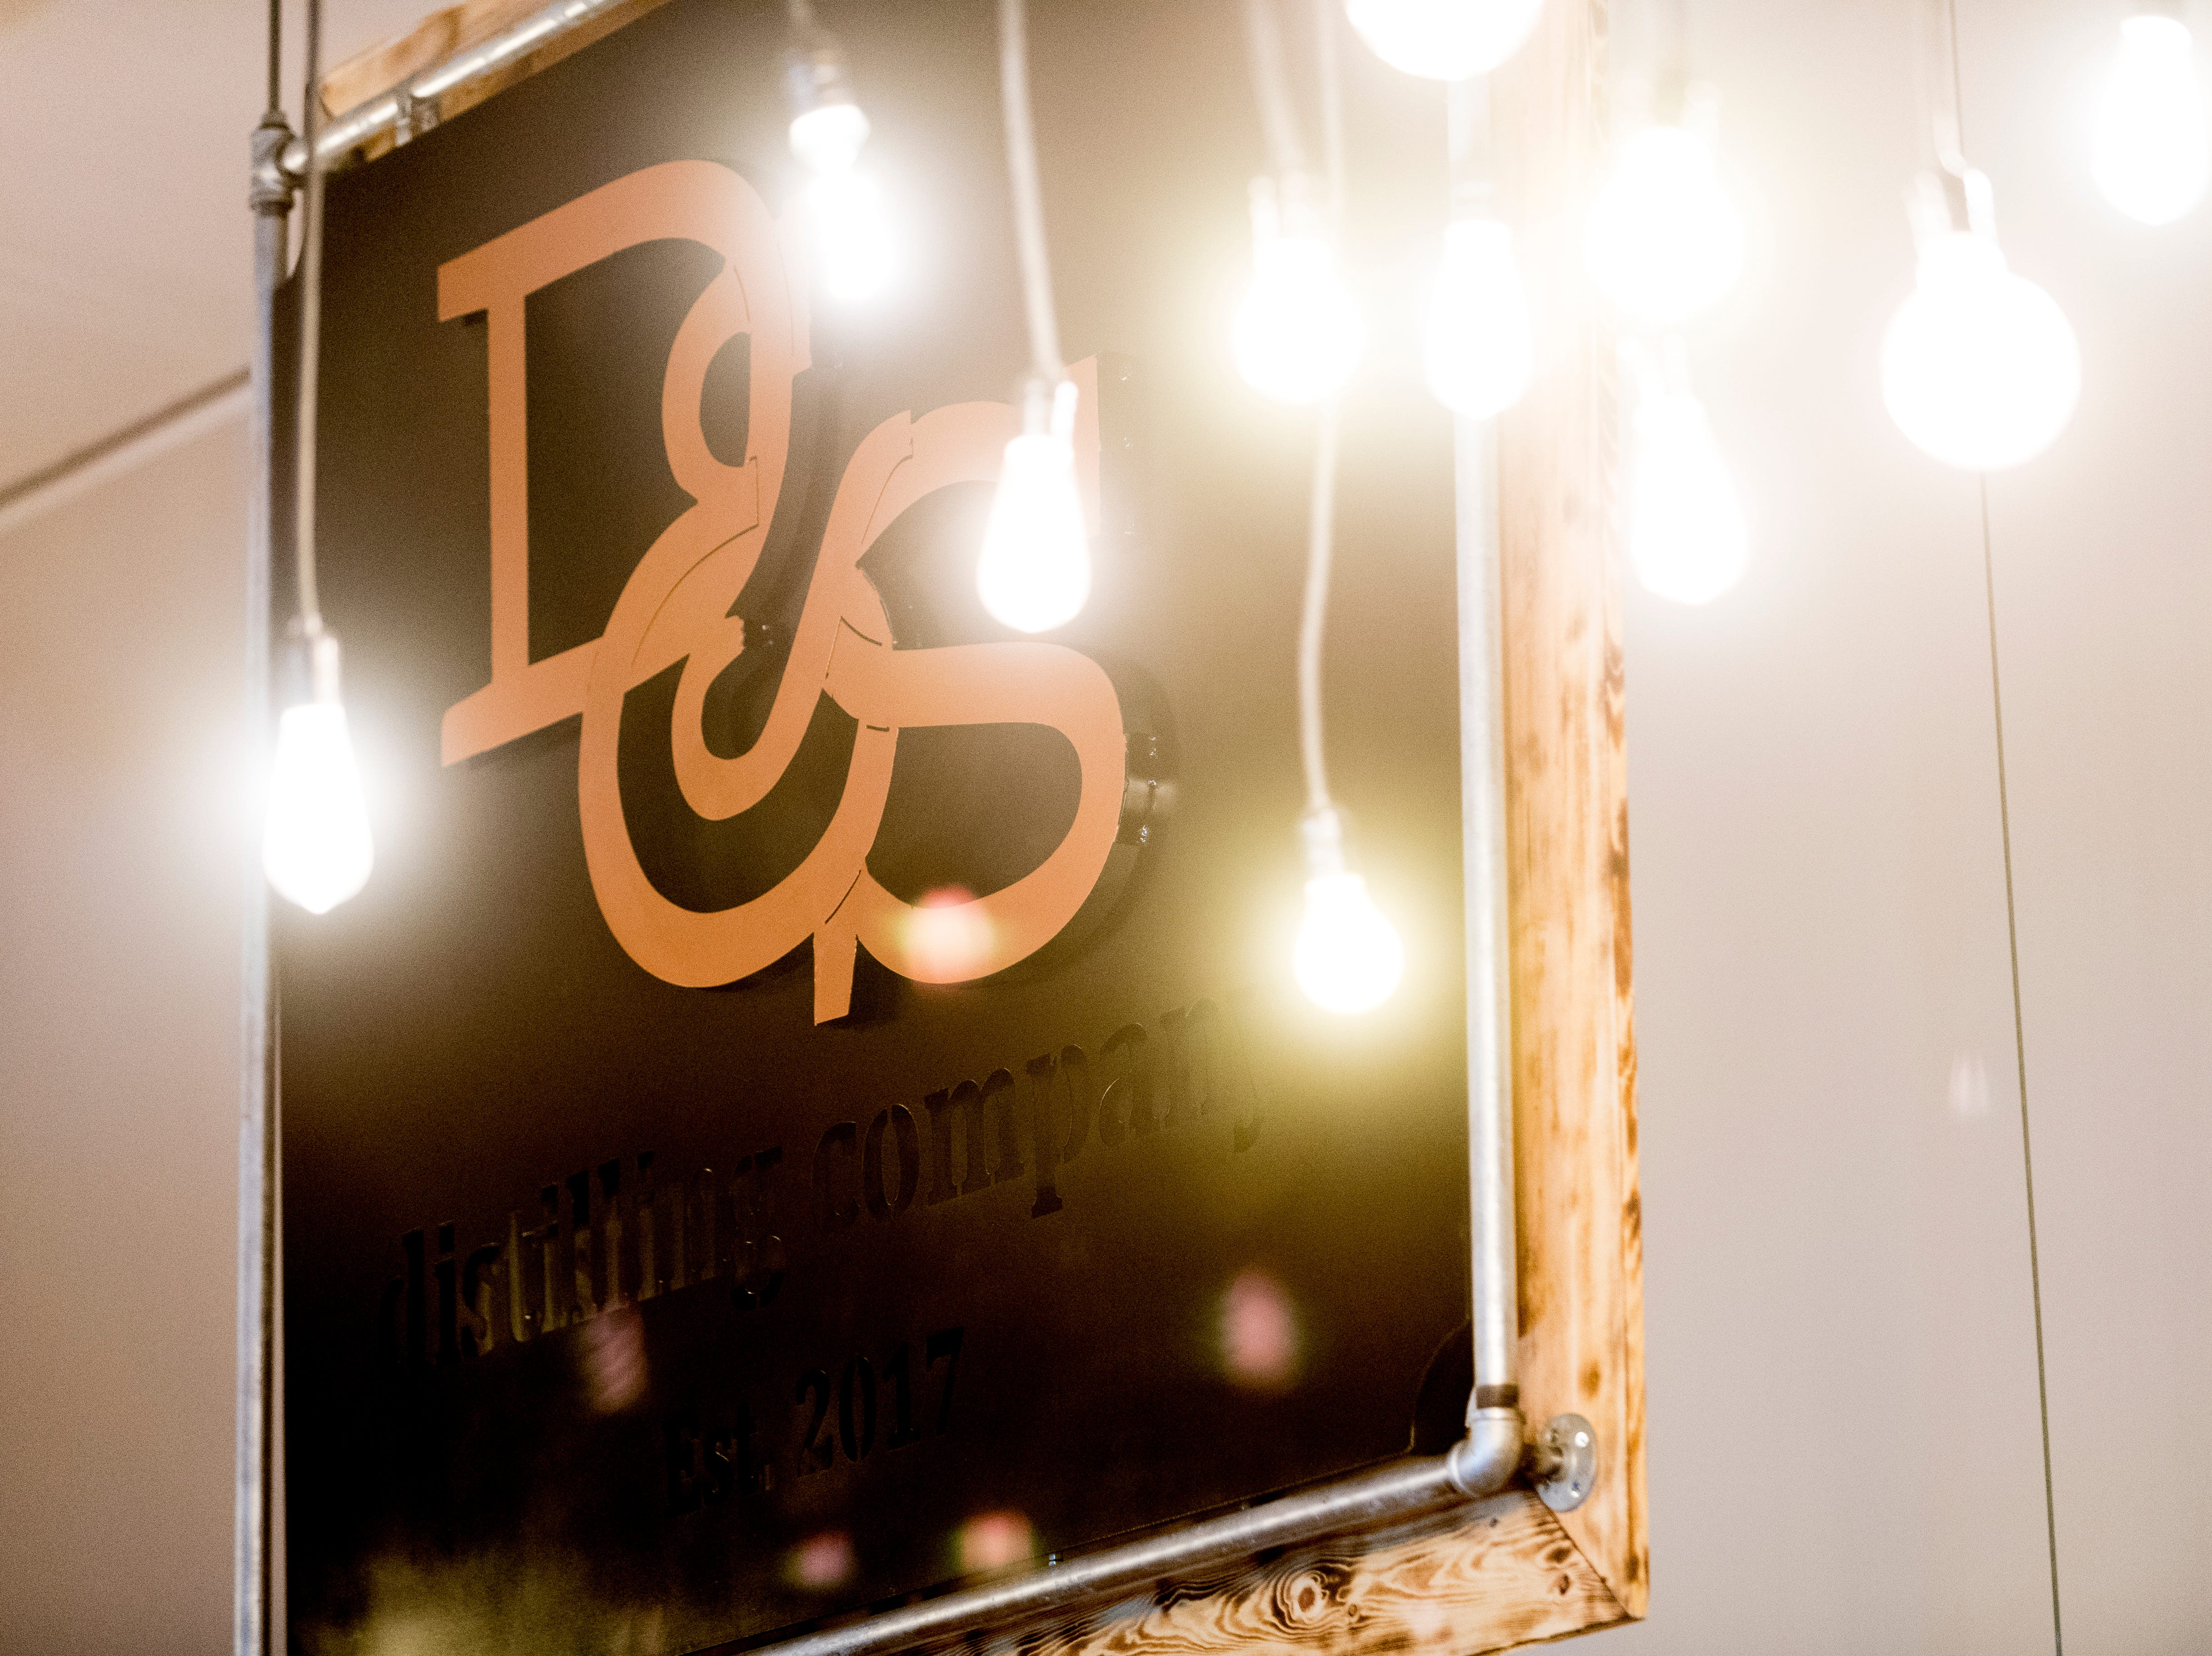 The D&S Distilling logo sign is illuminated over the bar area at their location on 1610 Jenkins Rd. in Sevierville, Tennessee on Tuesday, October 9, 2018. D&S Distilling is TennesseeÕs first completely organic and gluten-free distillery.